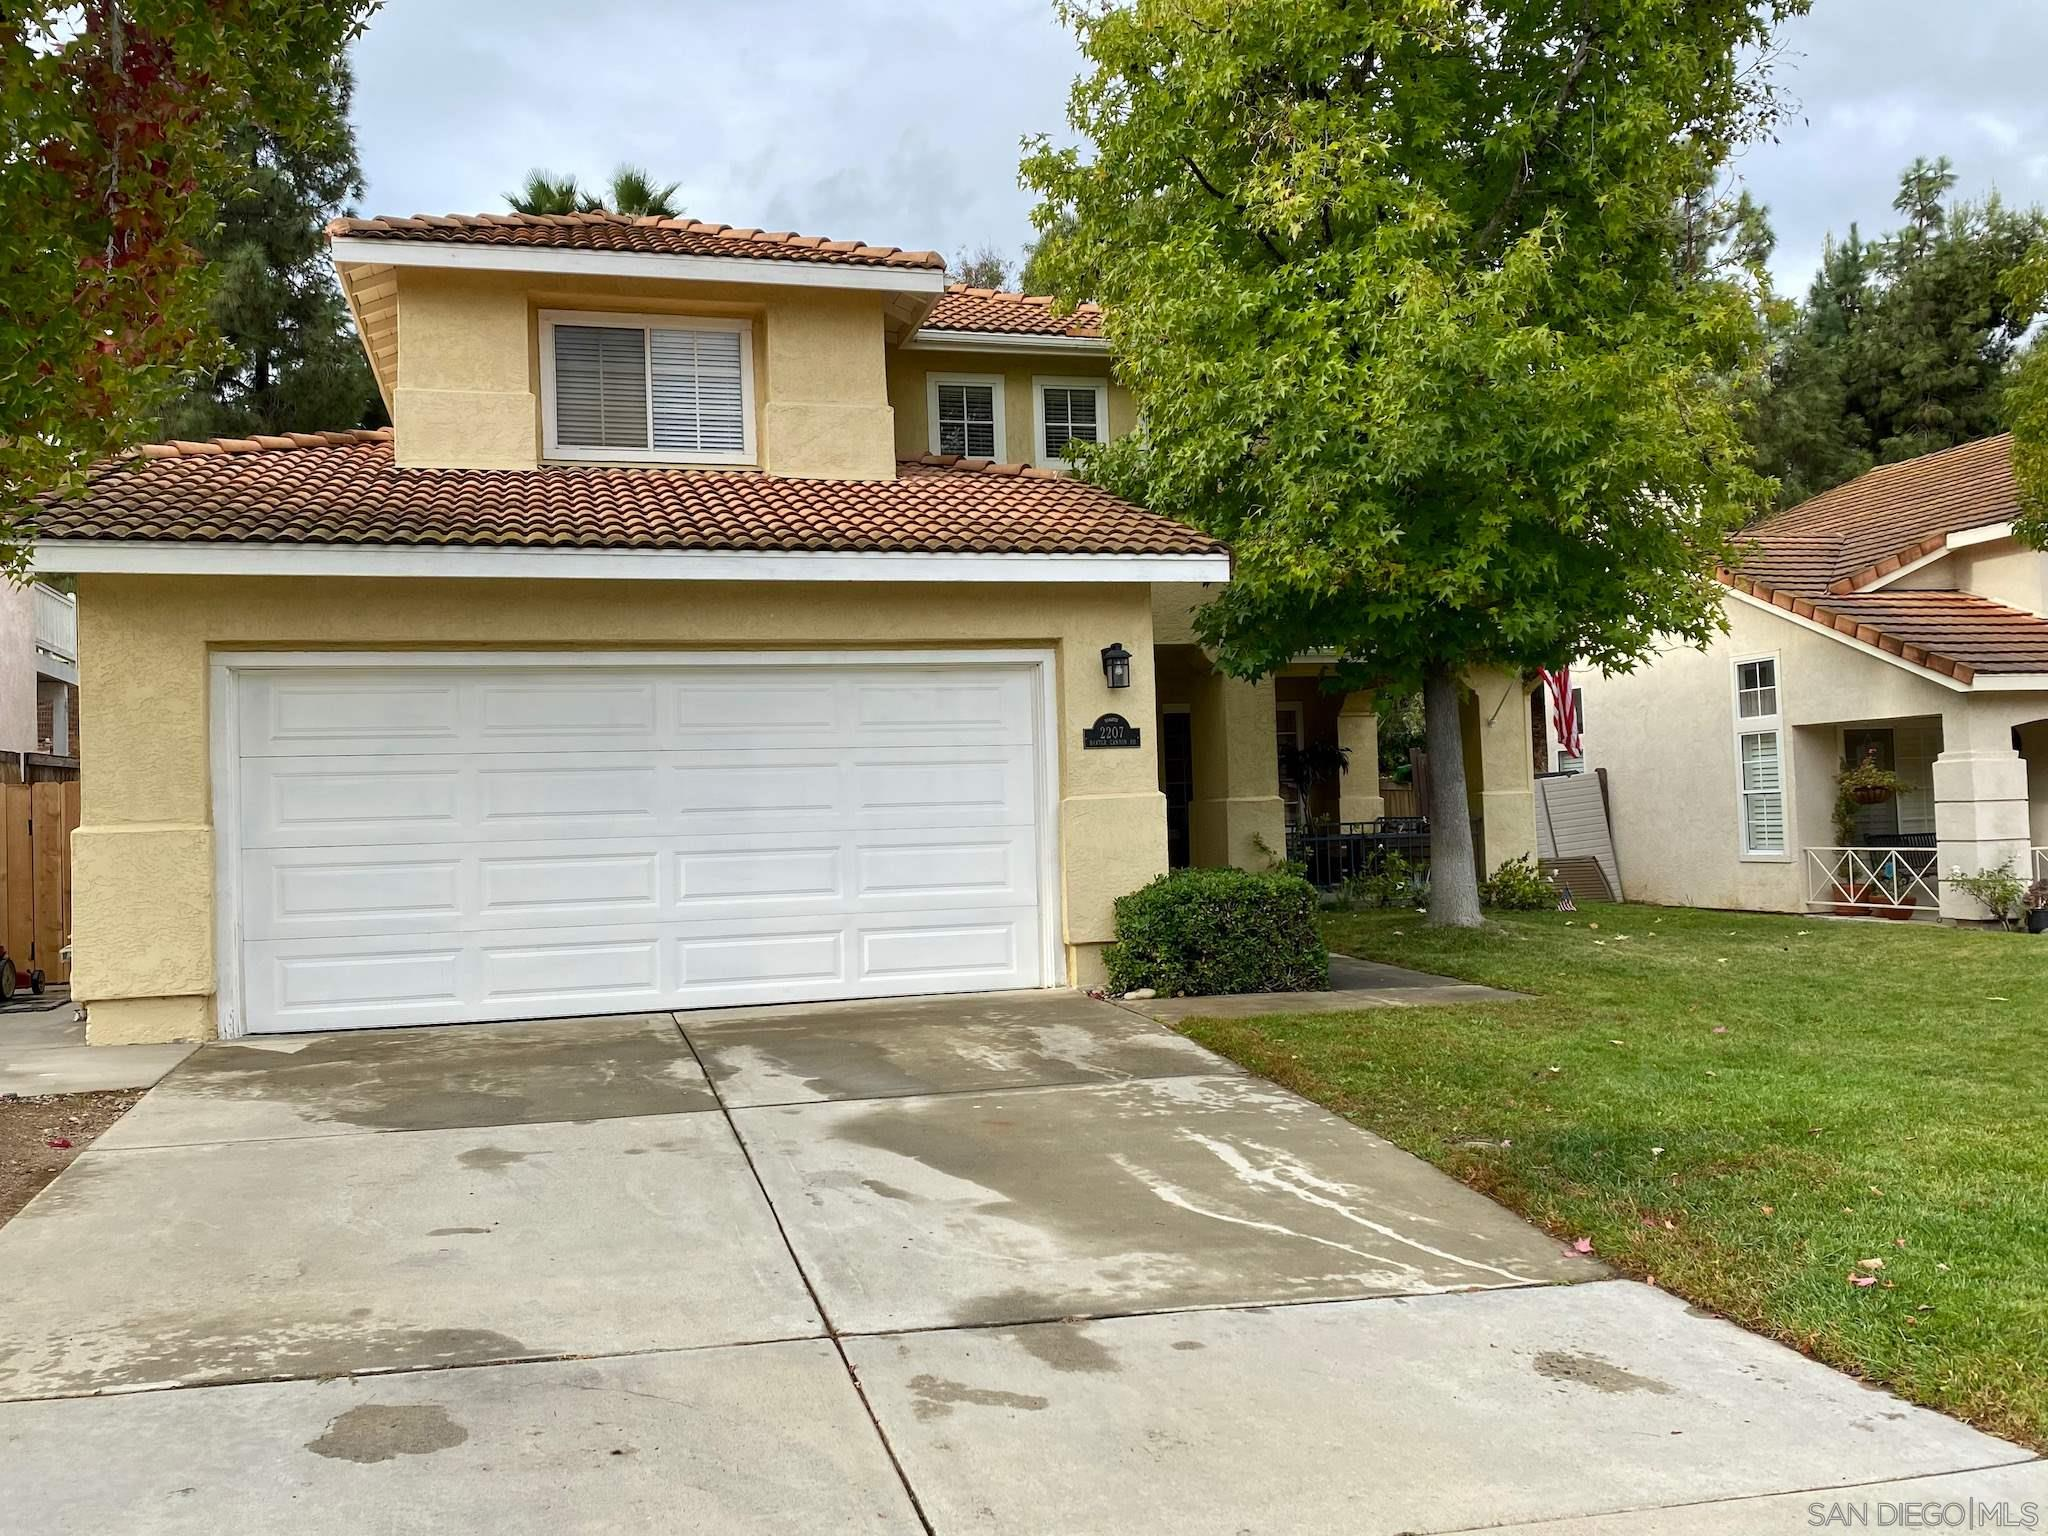 2207 Baxter Canyon Rd, Vista CA 92081